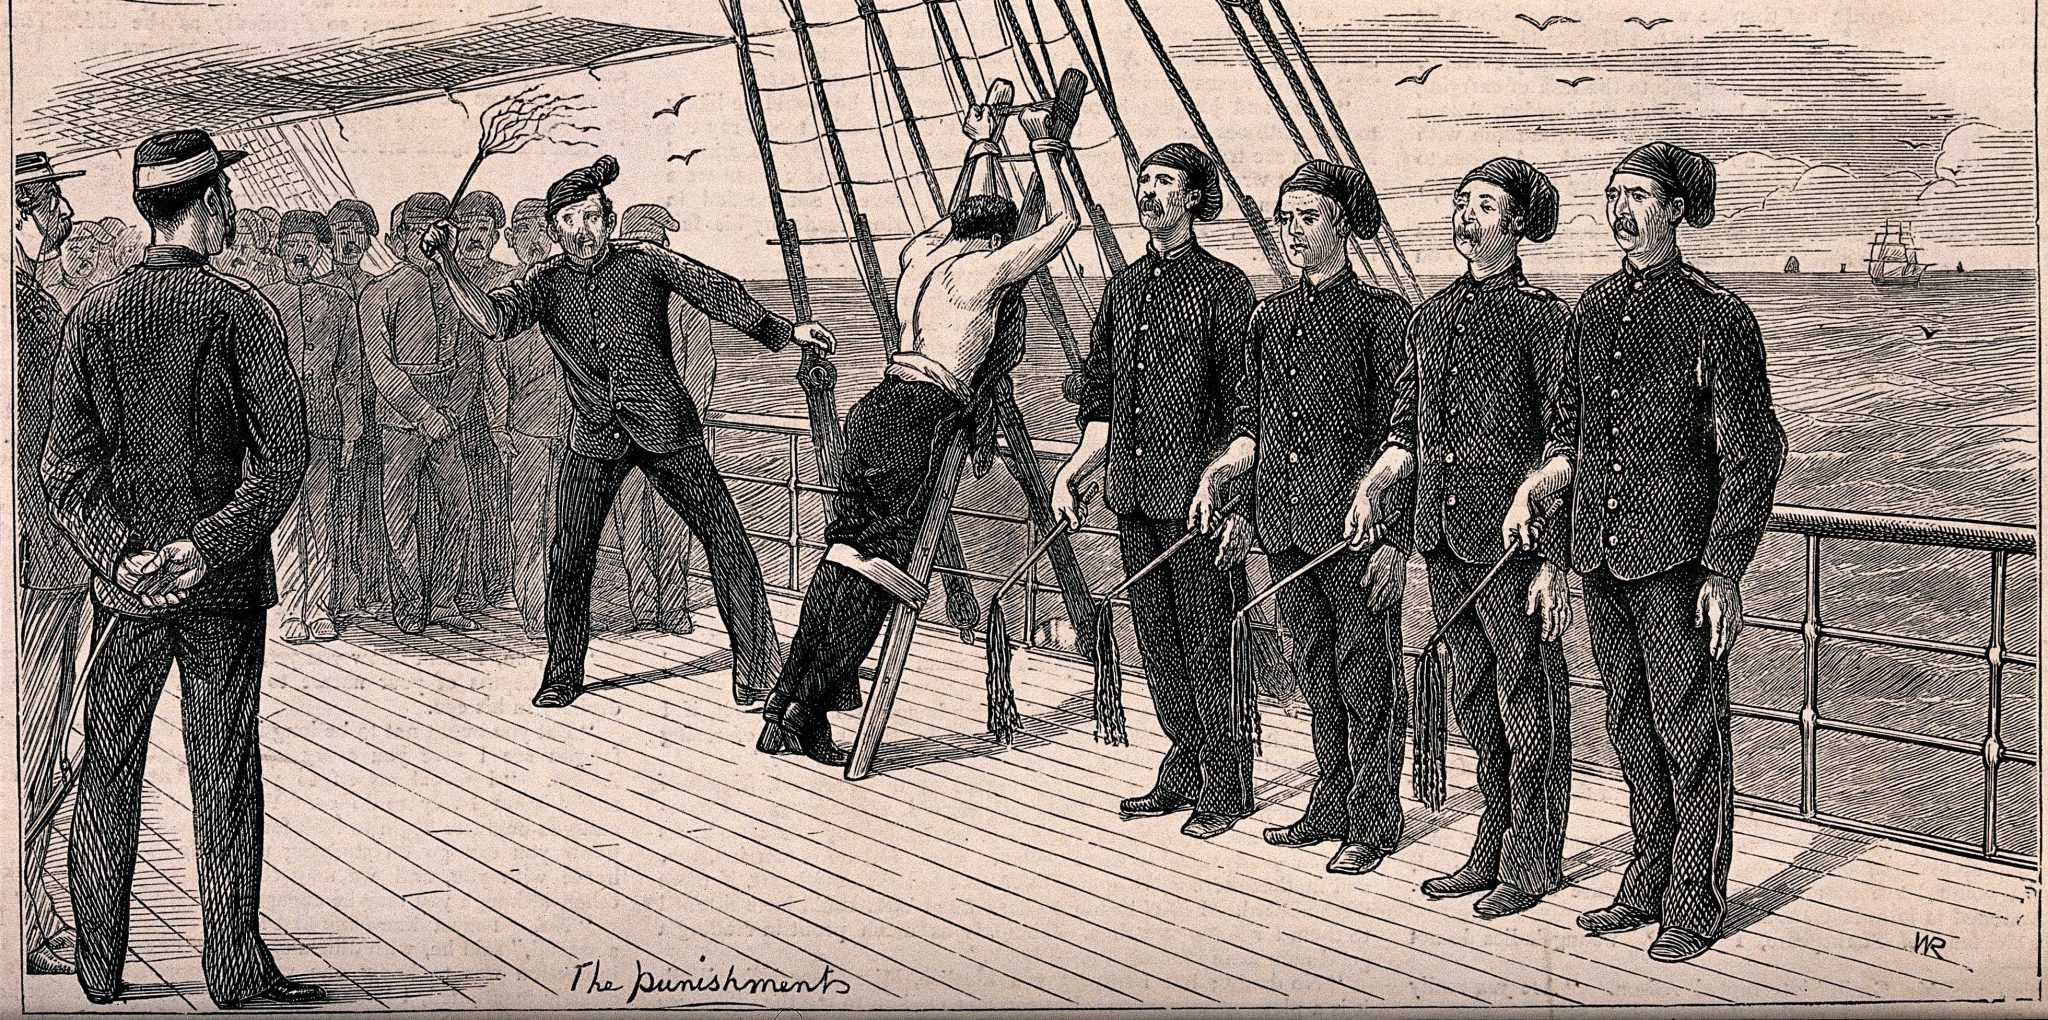 An Introduction to Punishment in Aubrey's Royal Navy | The Dear Surprise